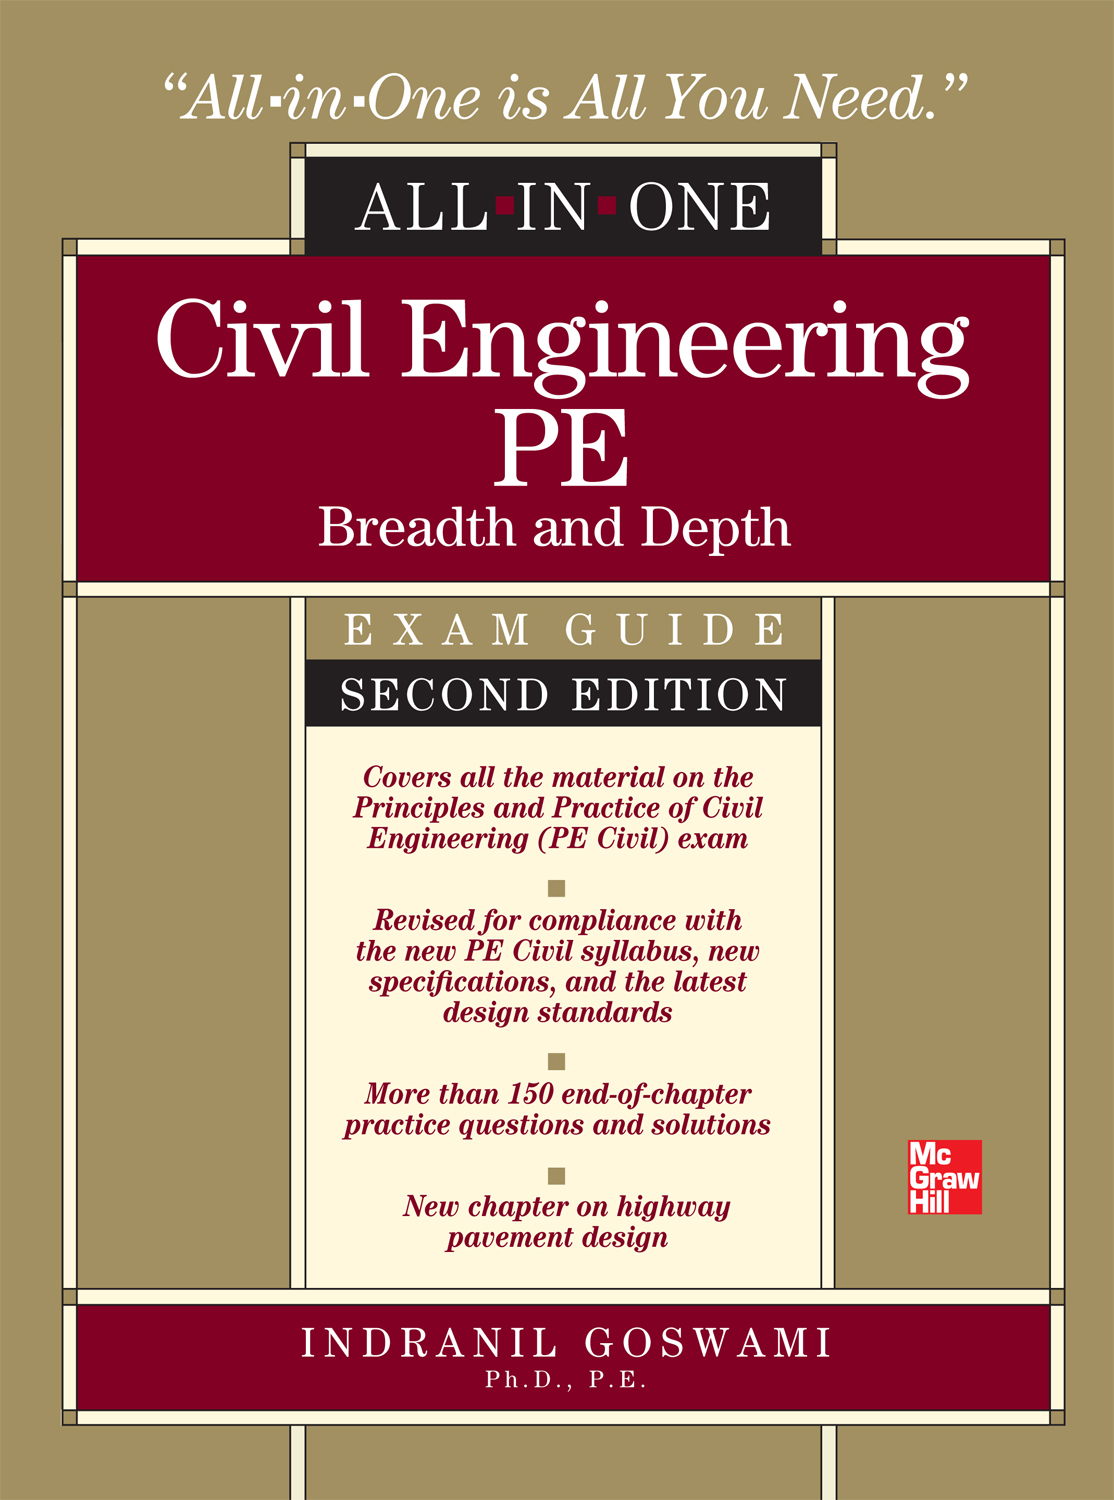 Civil Engineering All-In-One PE Exam Guide: Breadth and Depth 2/E